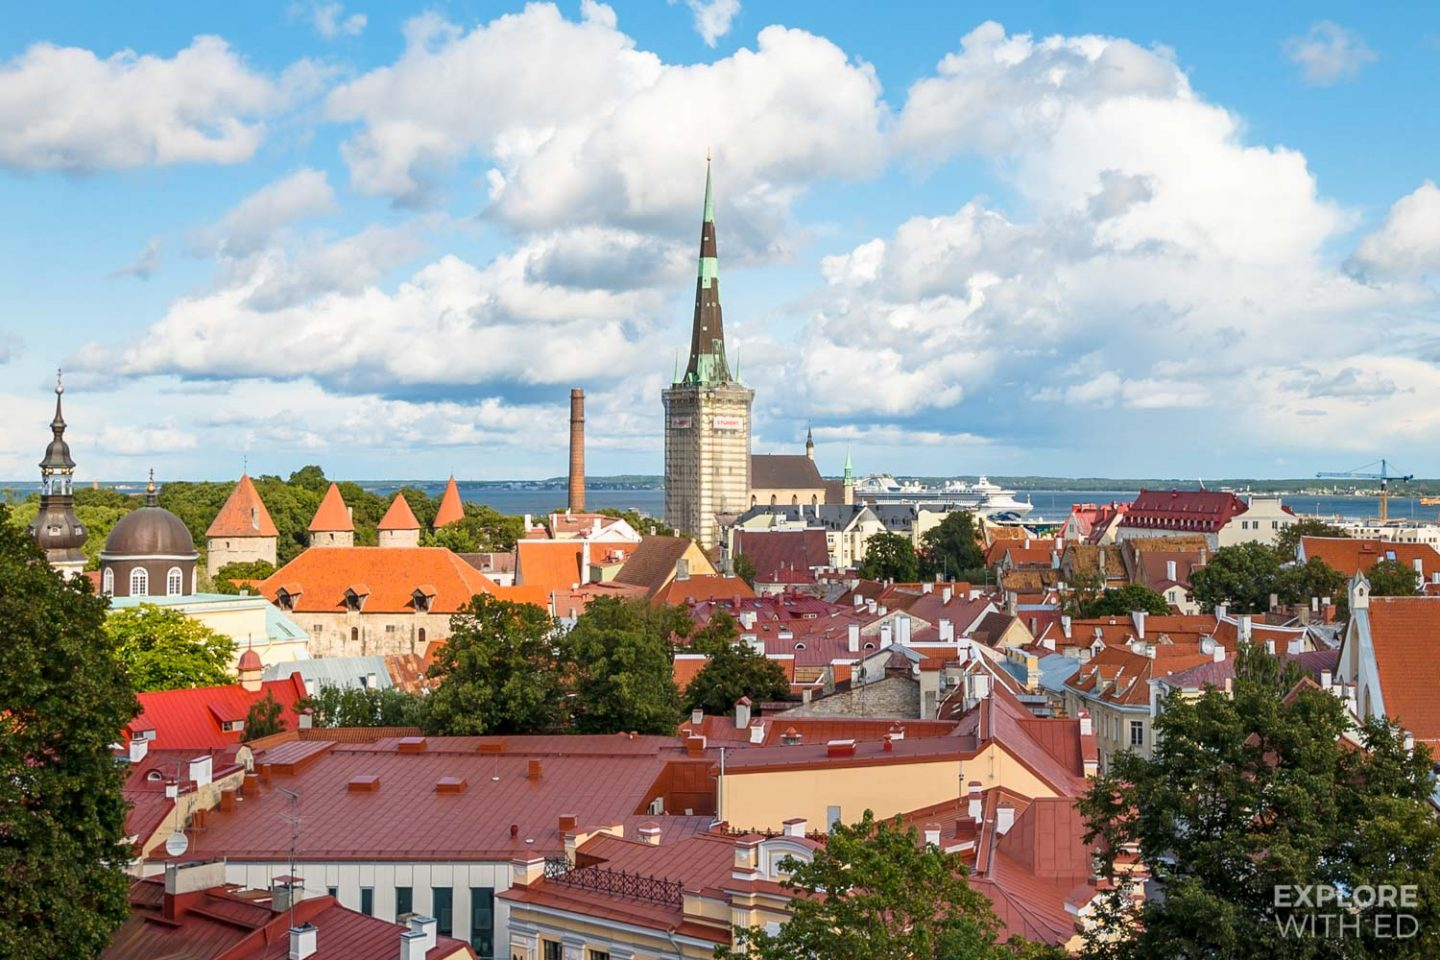 The Kohtuotsa viewing platform is one of the most magical places in Tallinn for photography lovers